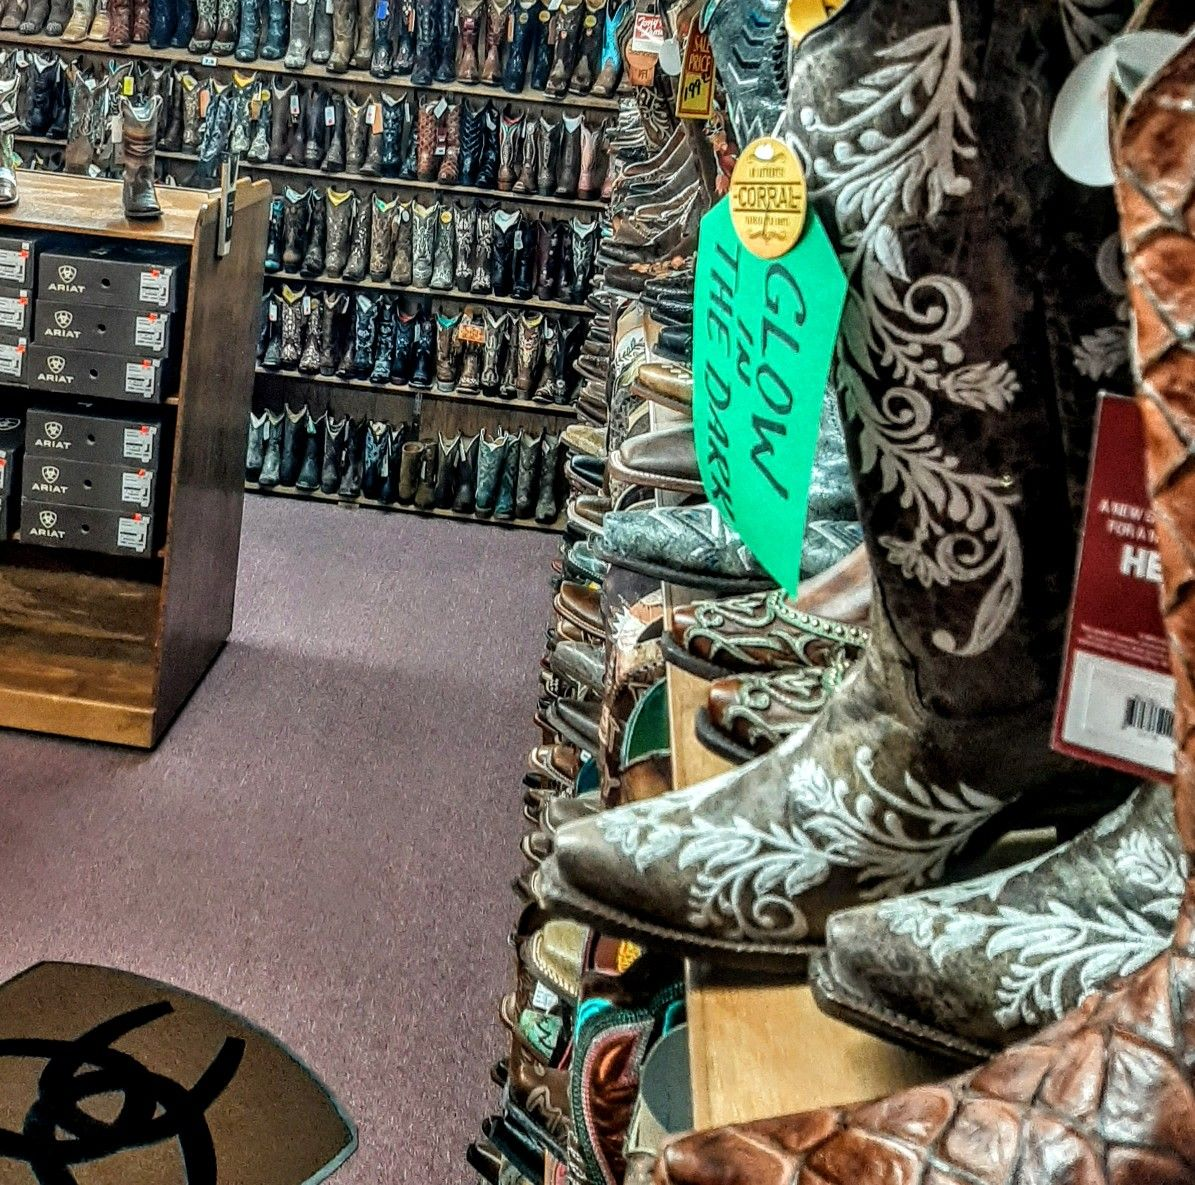 Pin on HB'S BOOT CORRAL